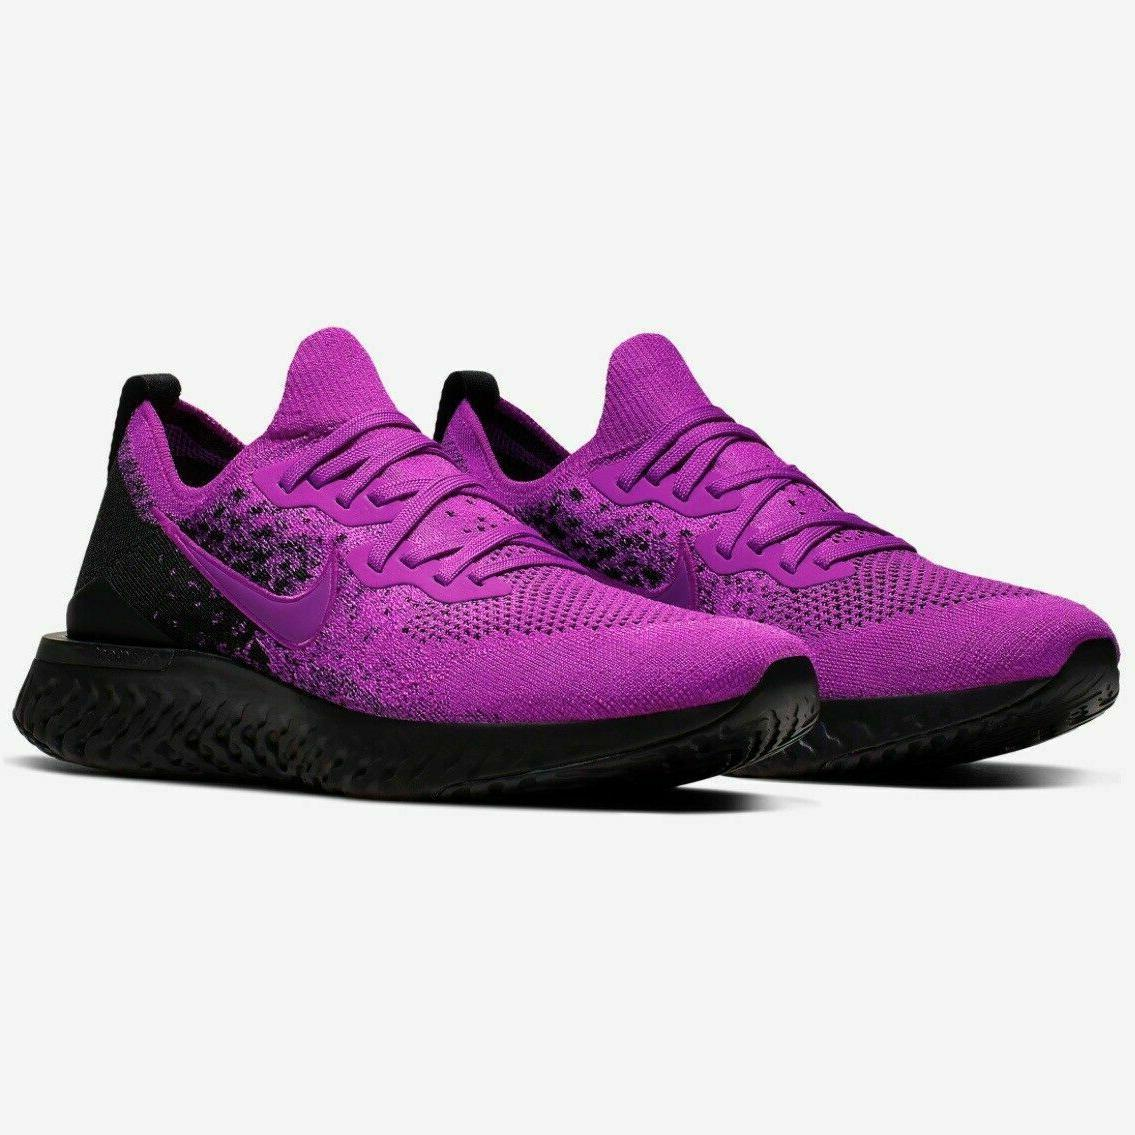 epic react flyknit 2 running gym shoes